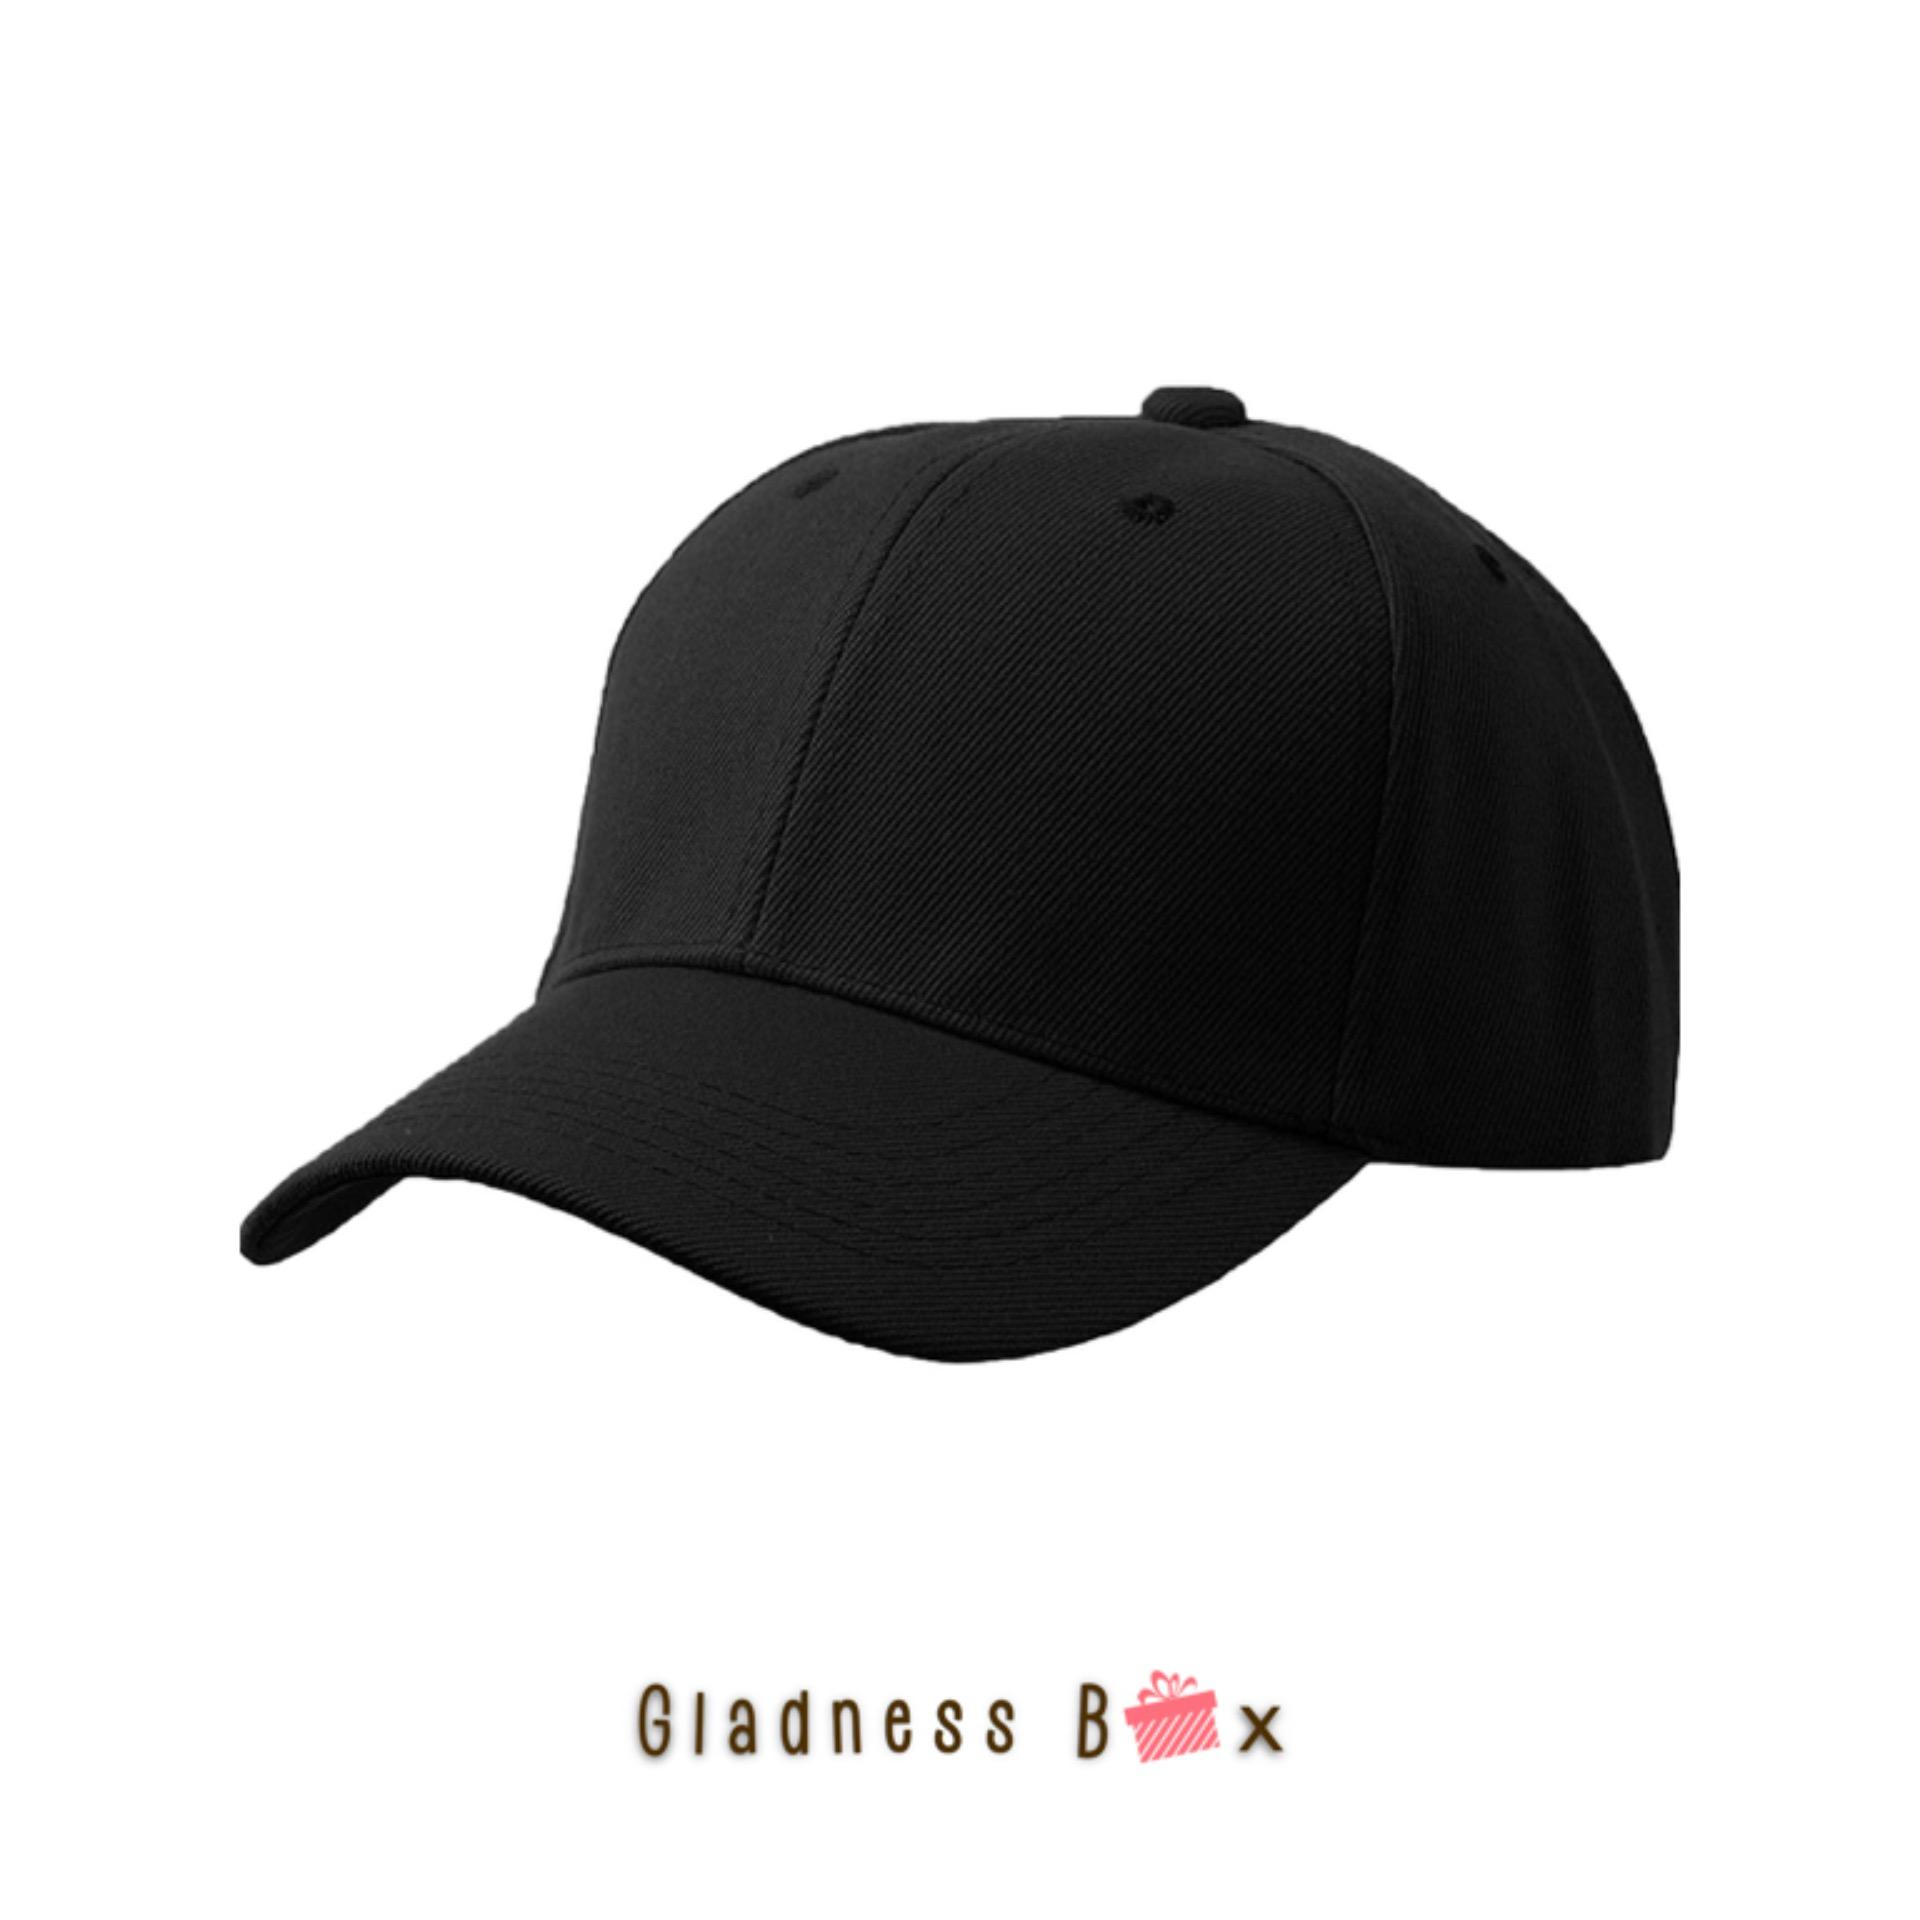 b2eff4b0d1a Gladness Box High Quality Plain Baseball Cap for Men Women Unisex